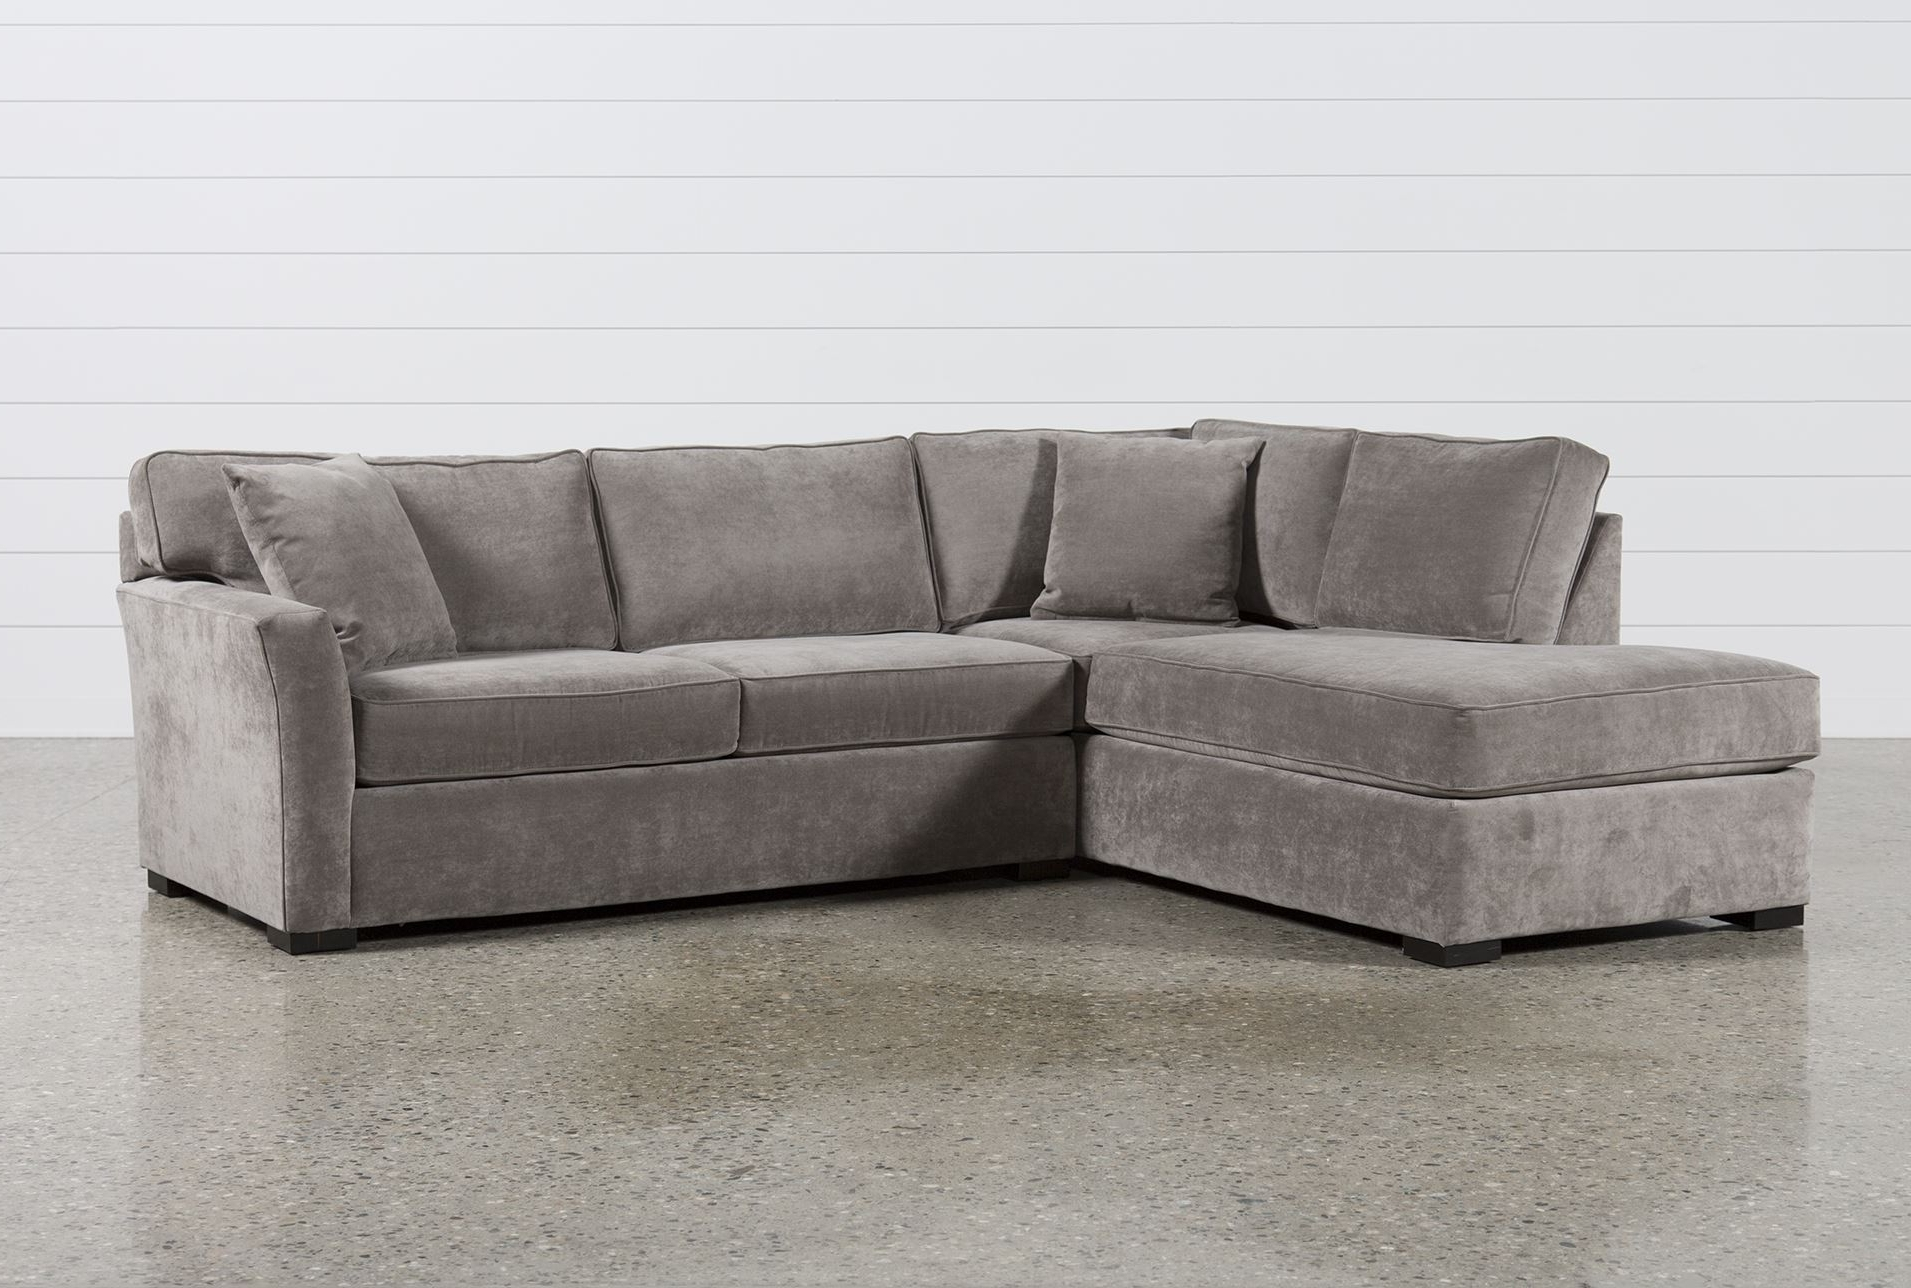 Living Spaces Sectional Sofas Within Well Known Aspen 2 Piece Sleeper Sectional W/laf Chaise (View 5 of 15)